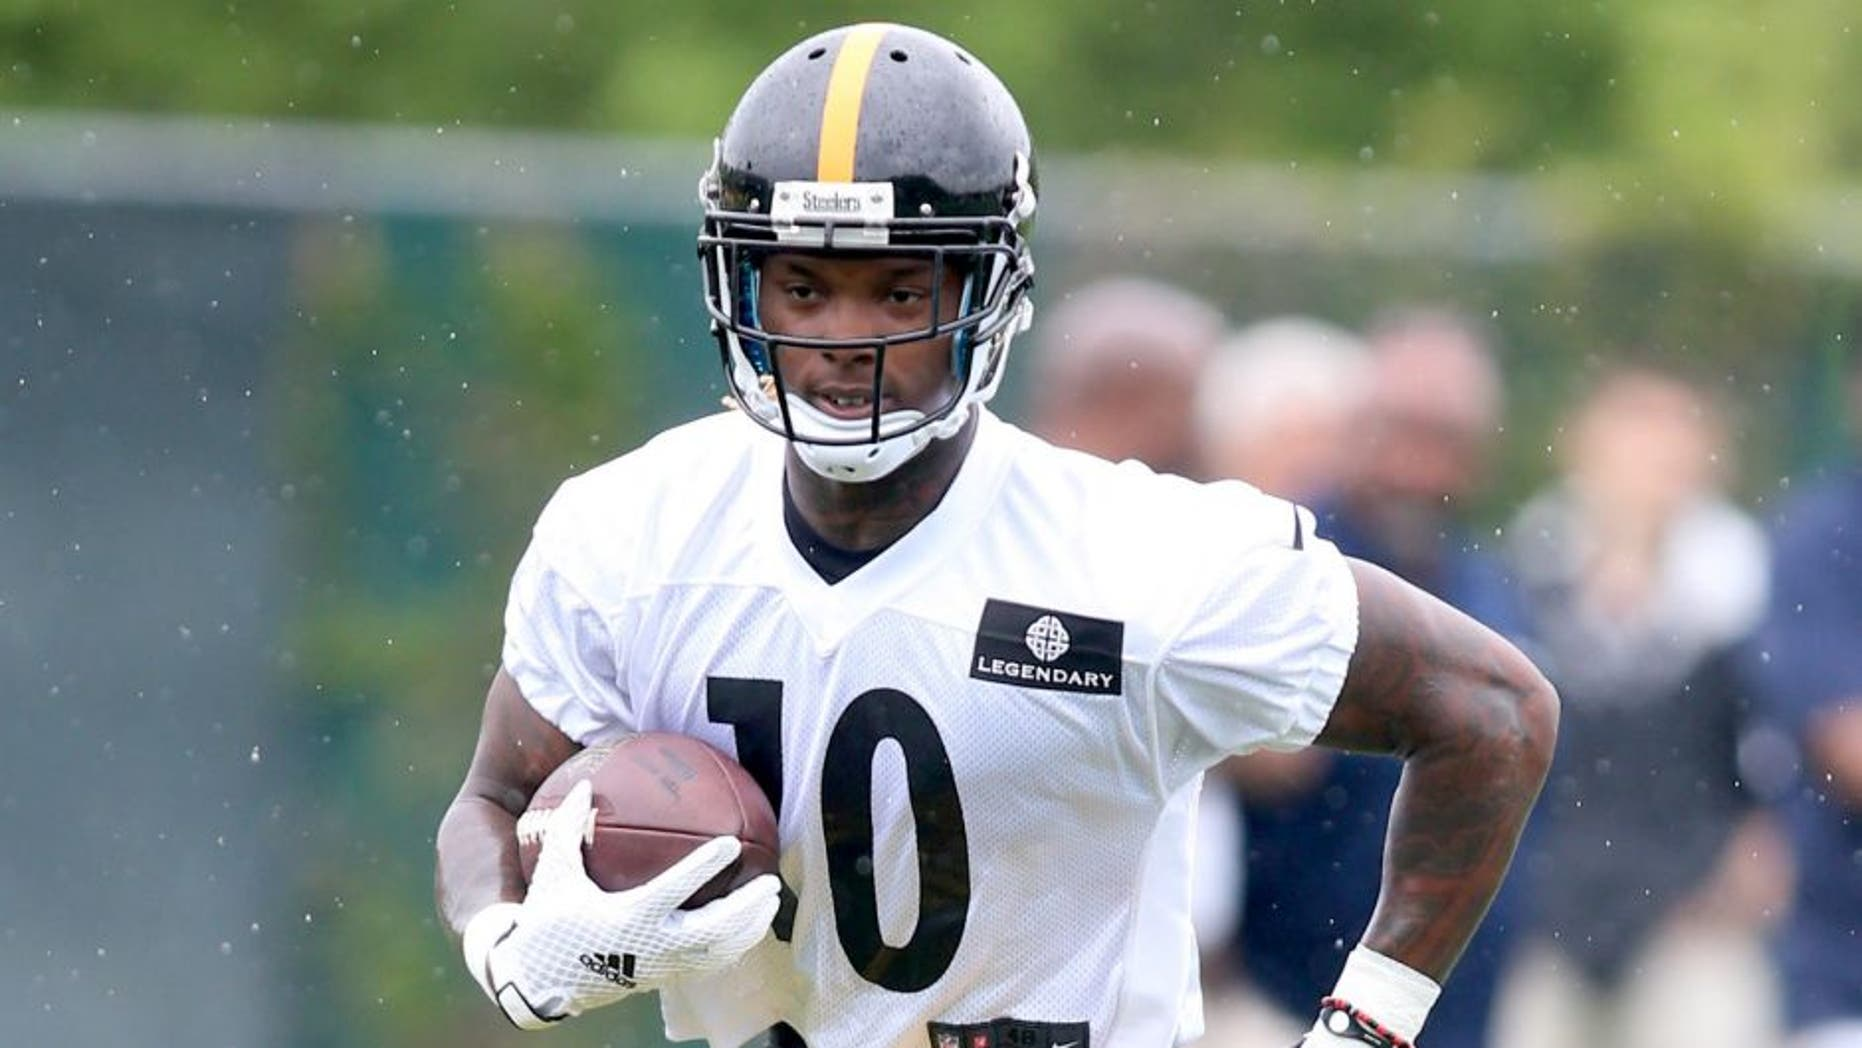 May 26, 2015; Pittsburgh, PA, USA; Pittsburgh Steelers wide receiver Martavis Bryant (10) participates in OTA drills at the UPMC Sports Performance Complex. Mandatory Credit: Charles LeClaire-USA TODAY Sports